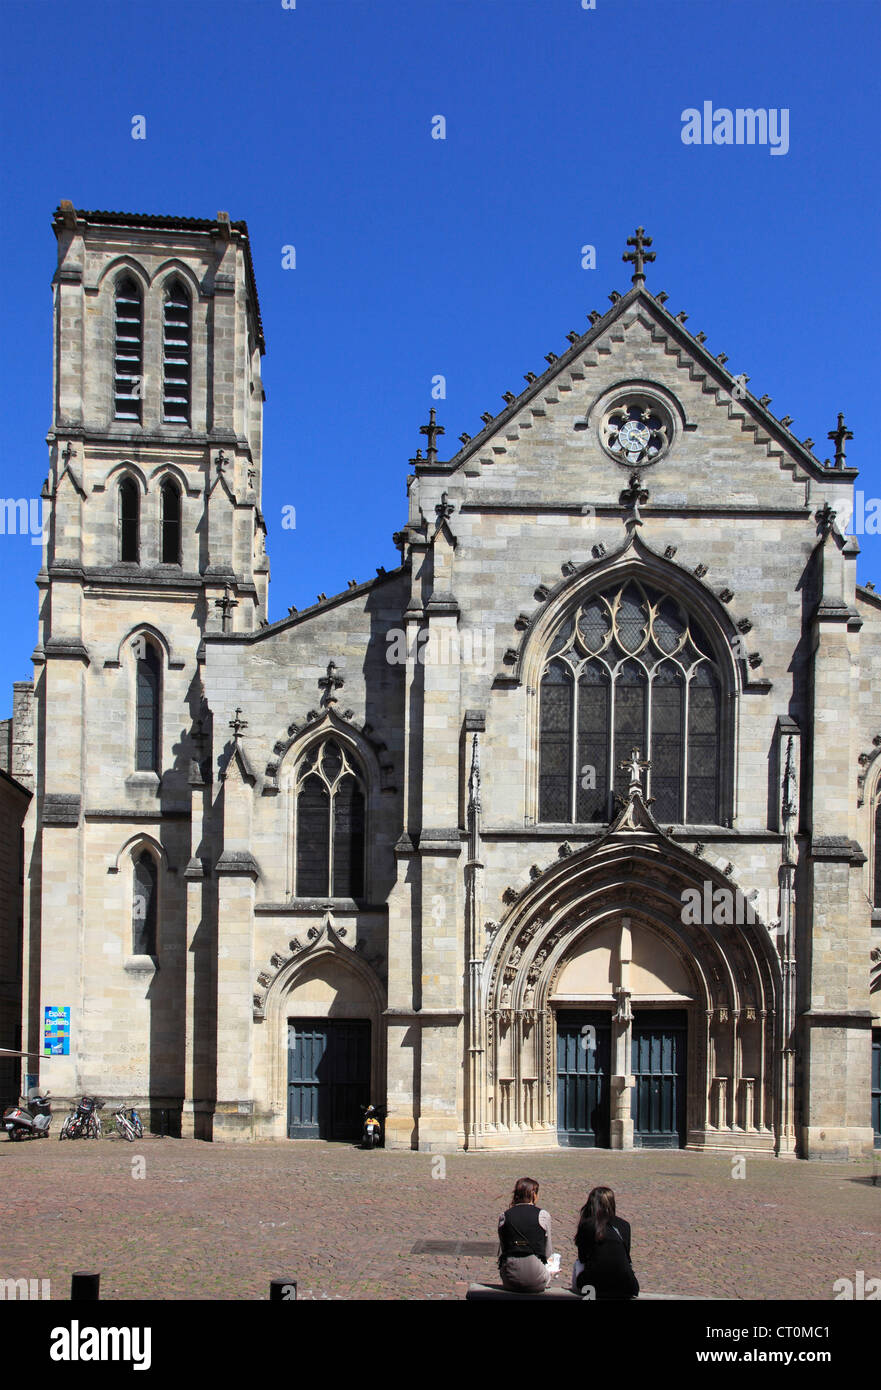 France, Aquitaine, Bordeaux, Église St-Pierre, church, - Stock Image